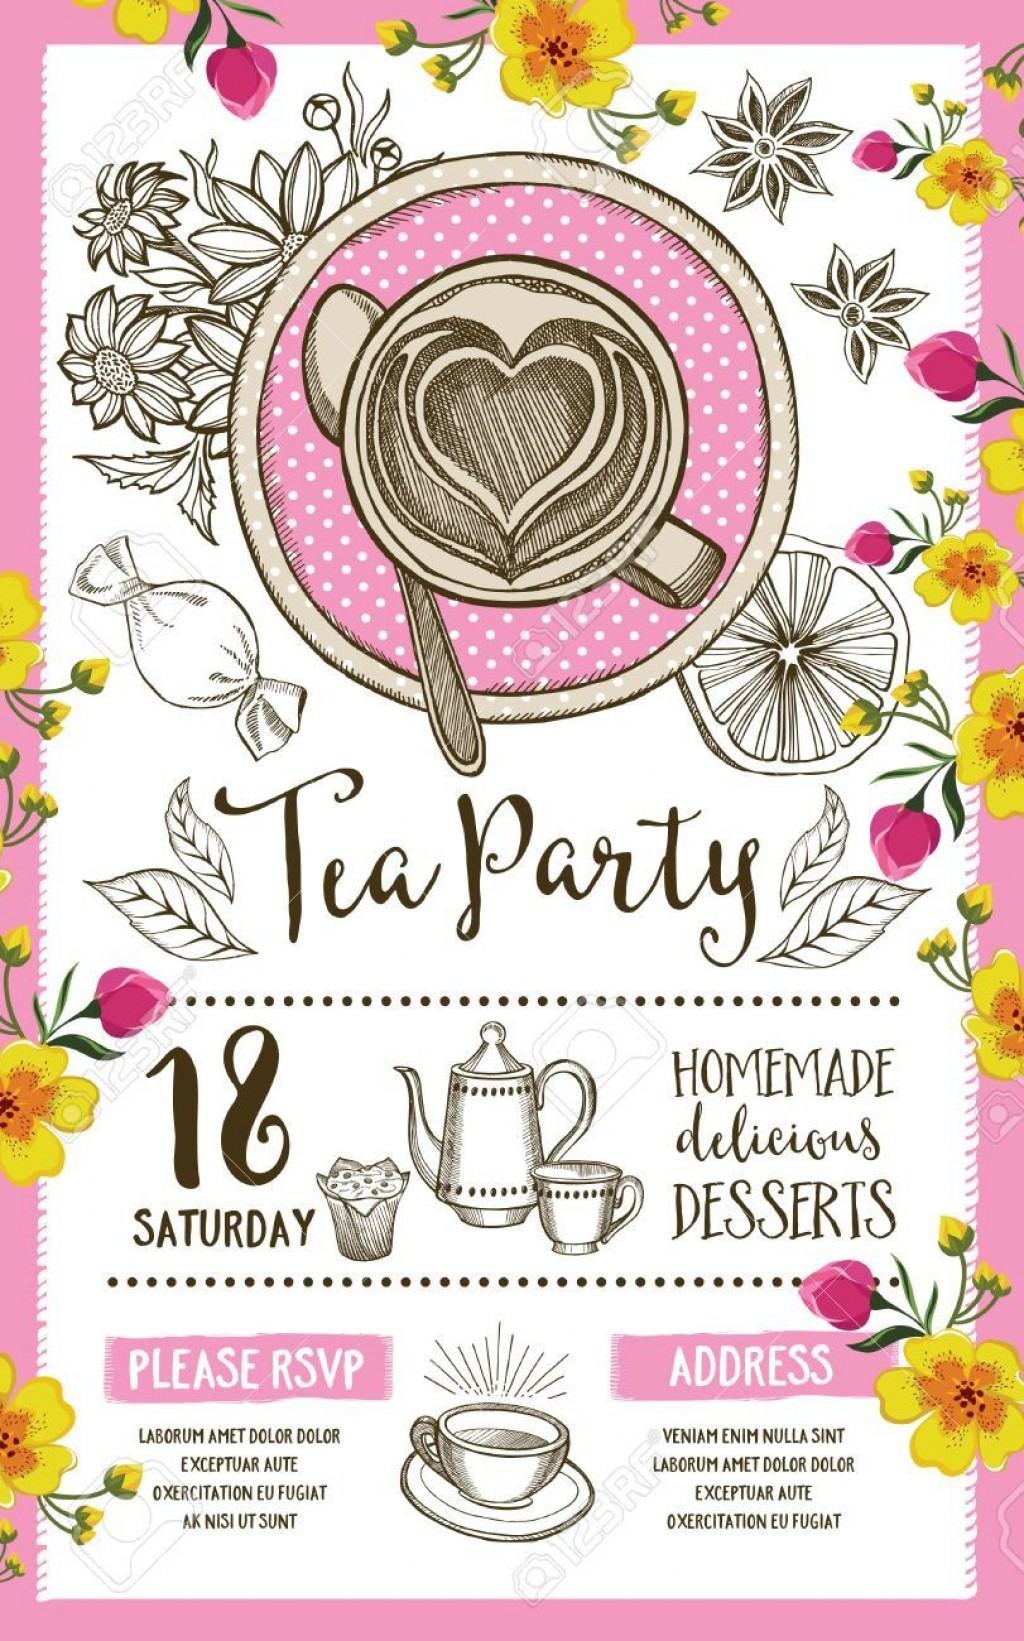 004 Wonderful Tea Party Invitation Template Inspiration  Vintage Free Editable Card PdfLarge